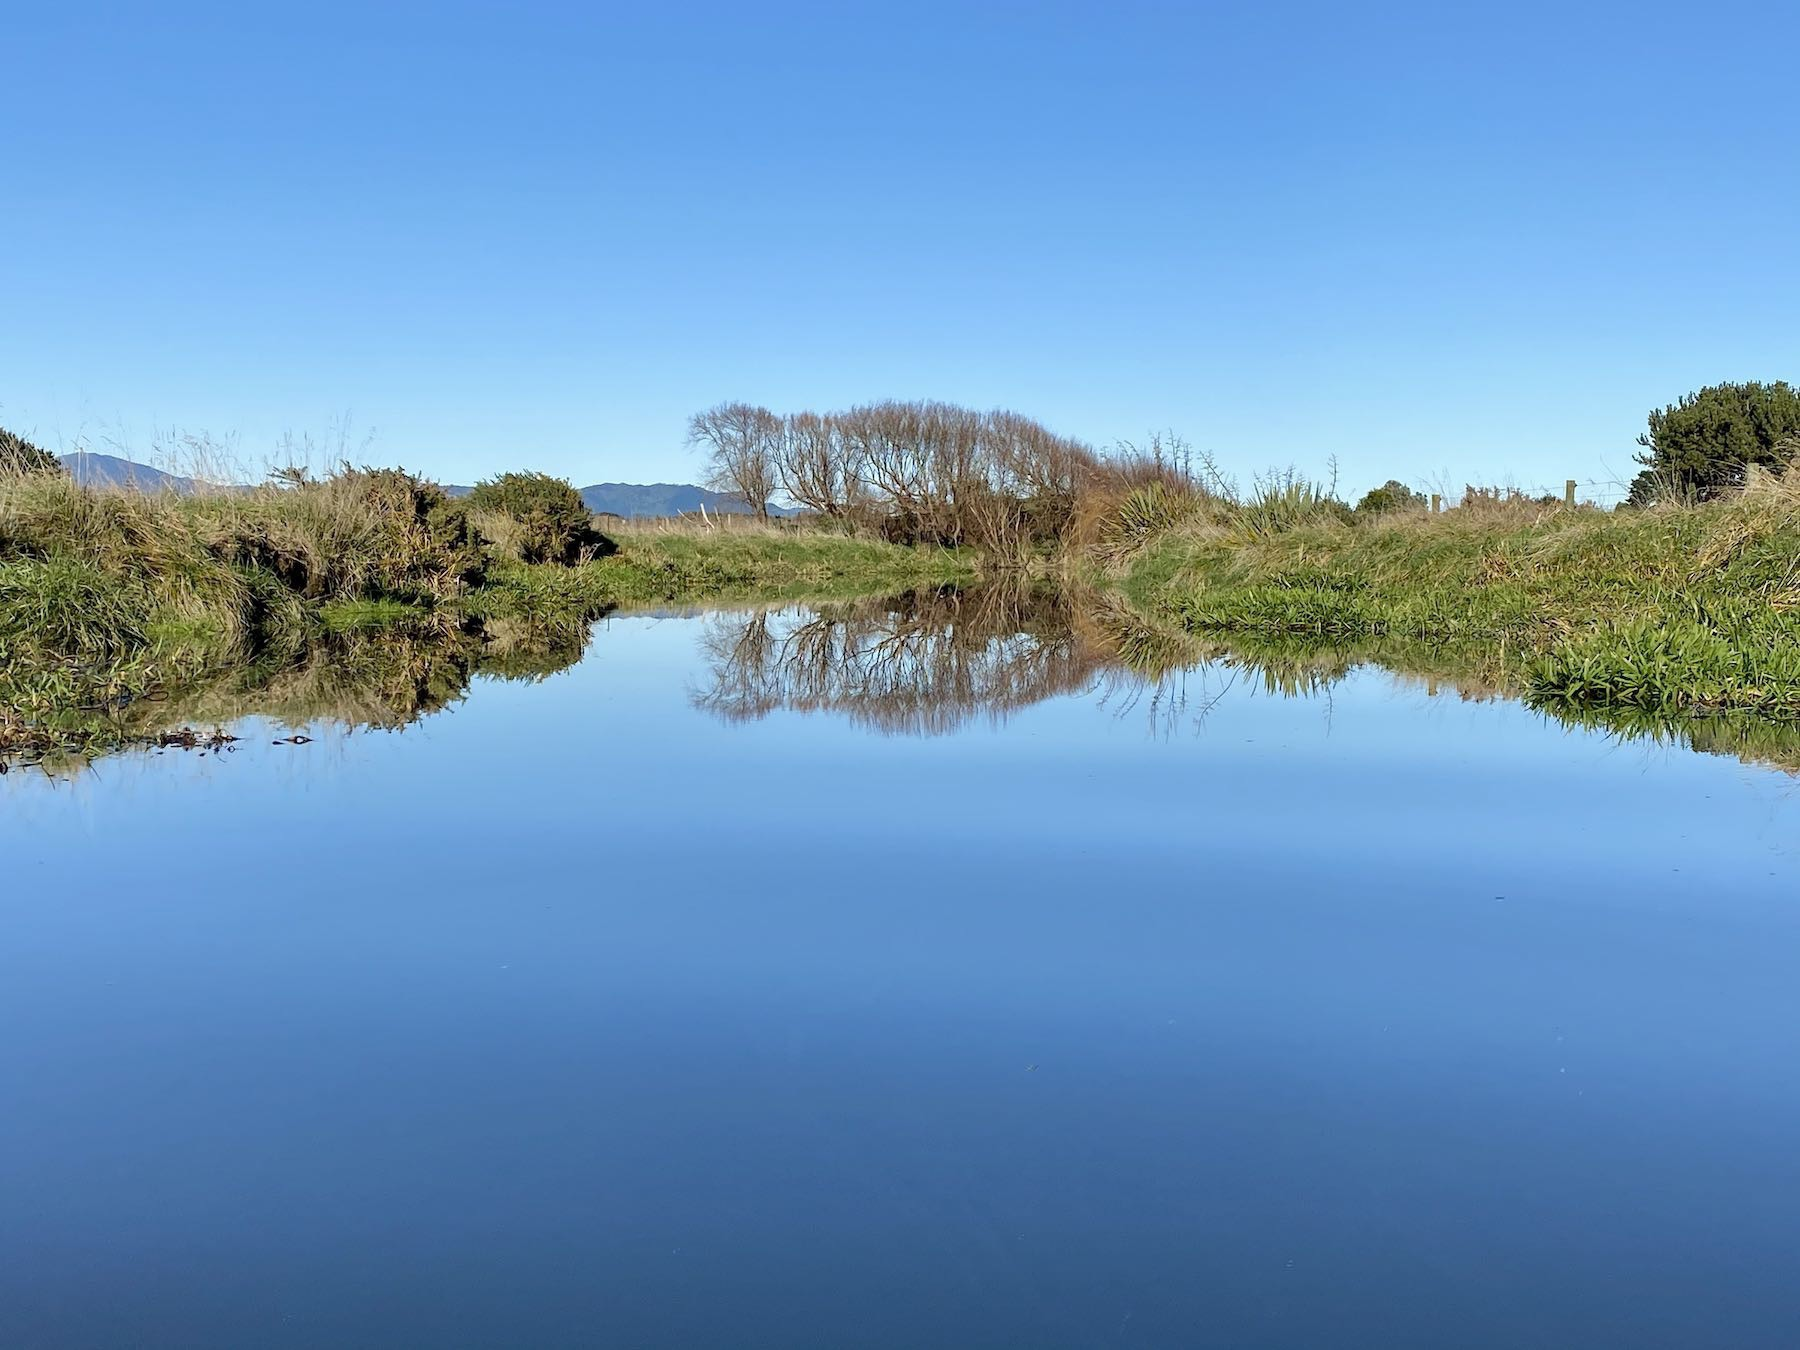 Still blue water, blue sky, reflected vegetation, including bare willow trees.